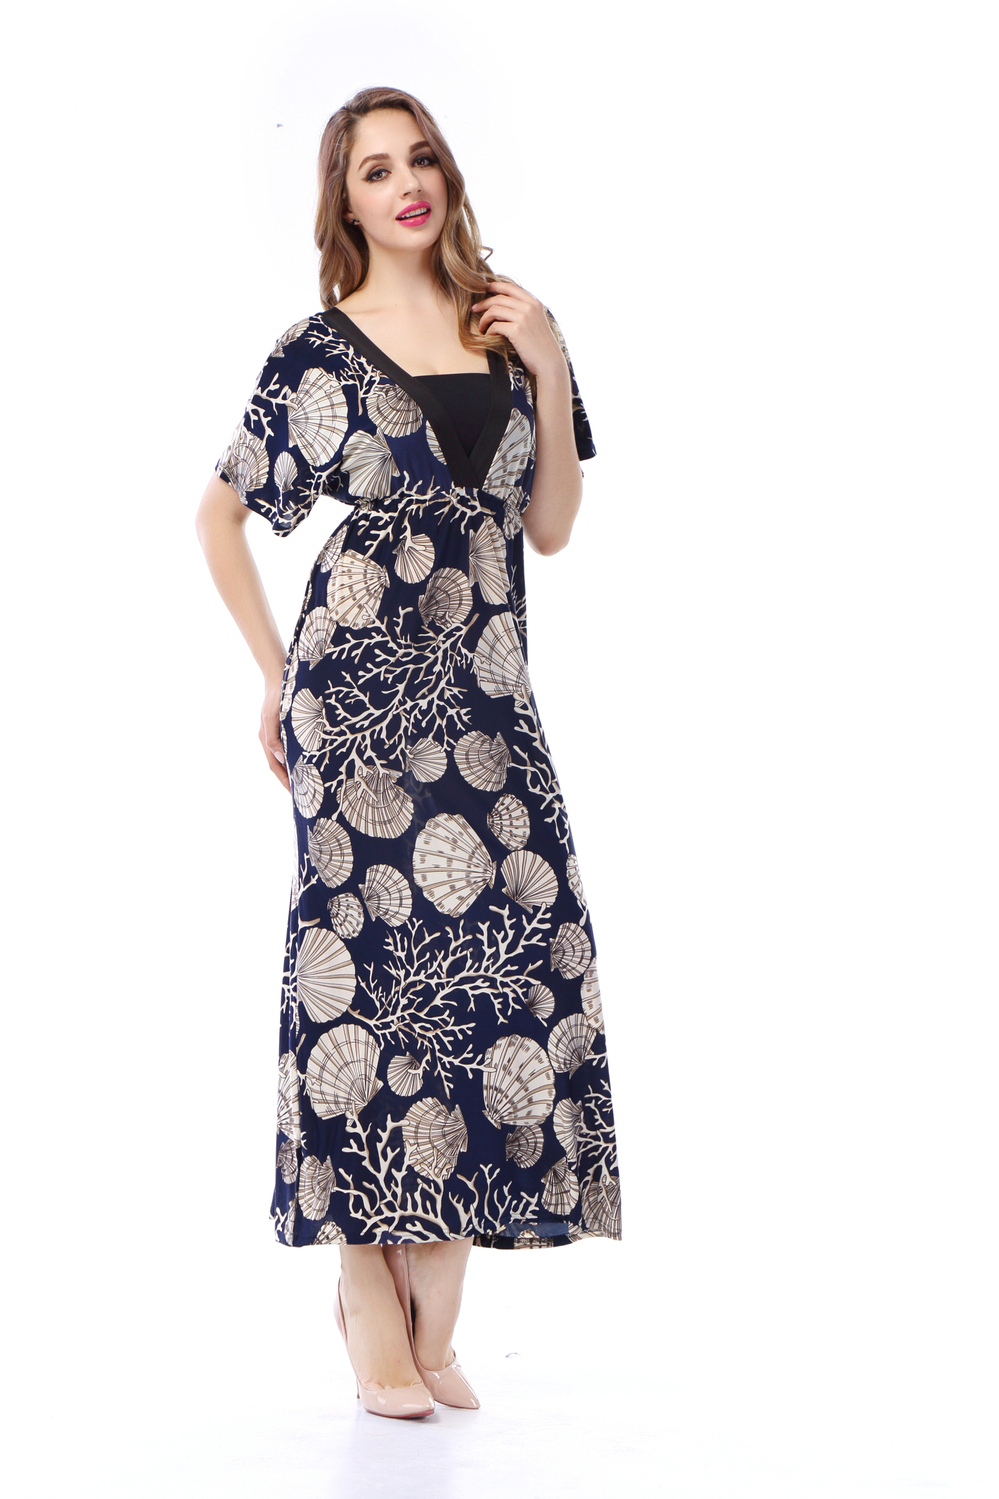 Summer Style Maxi Dress 2015 New Fashion Women Party Long Dresses Print V Neck Casual Vintage